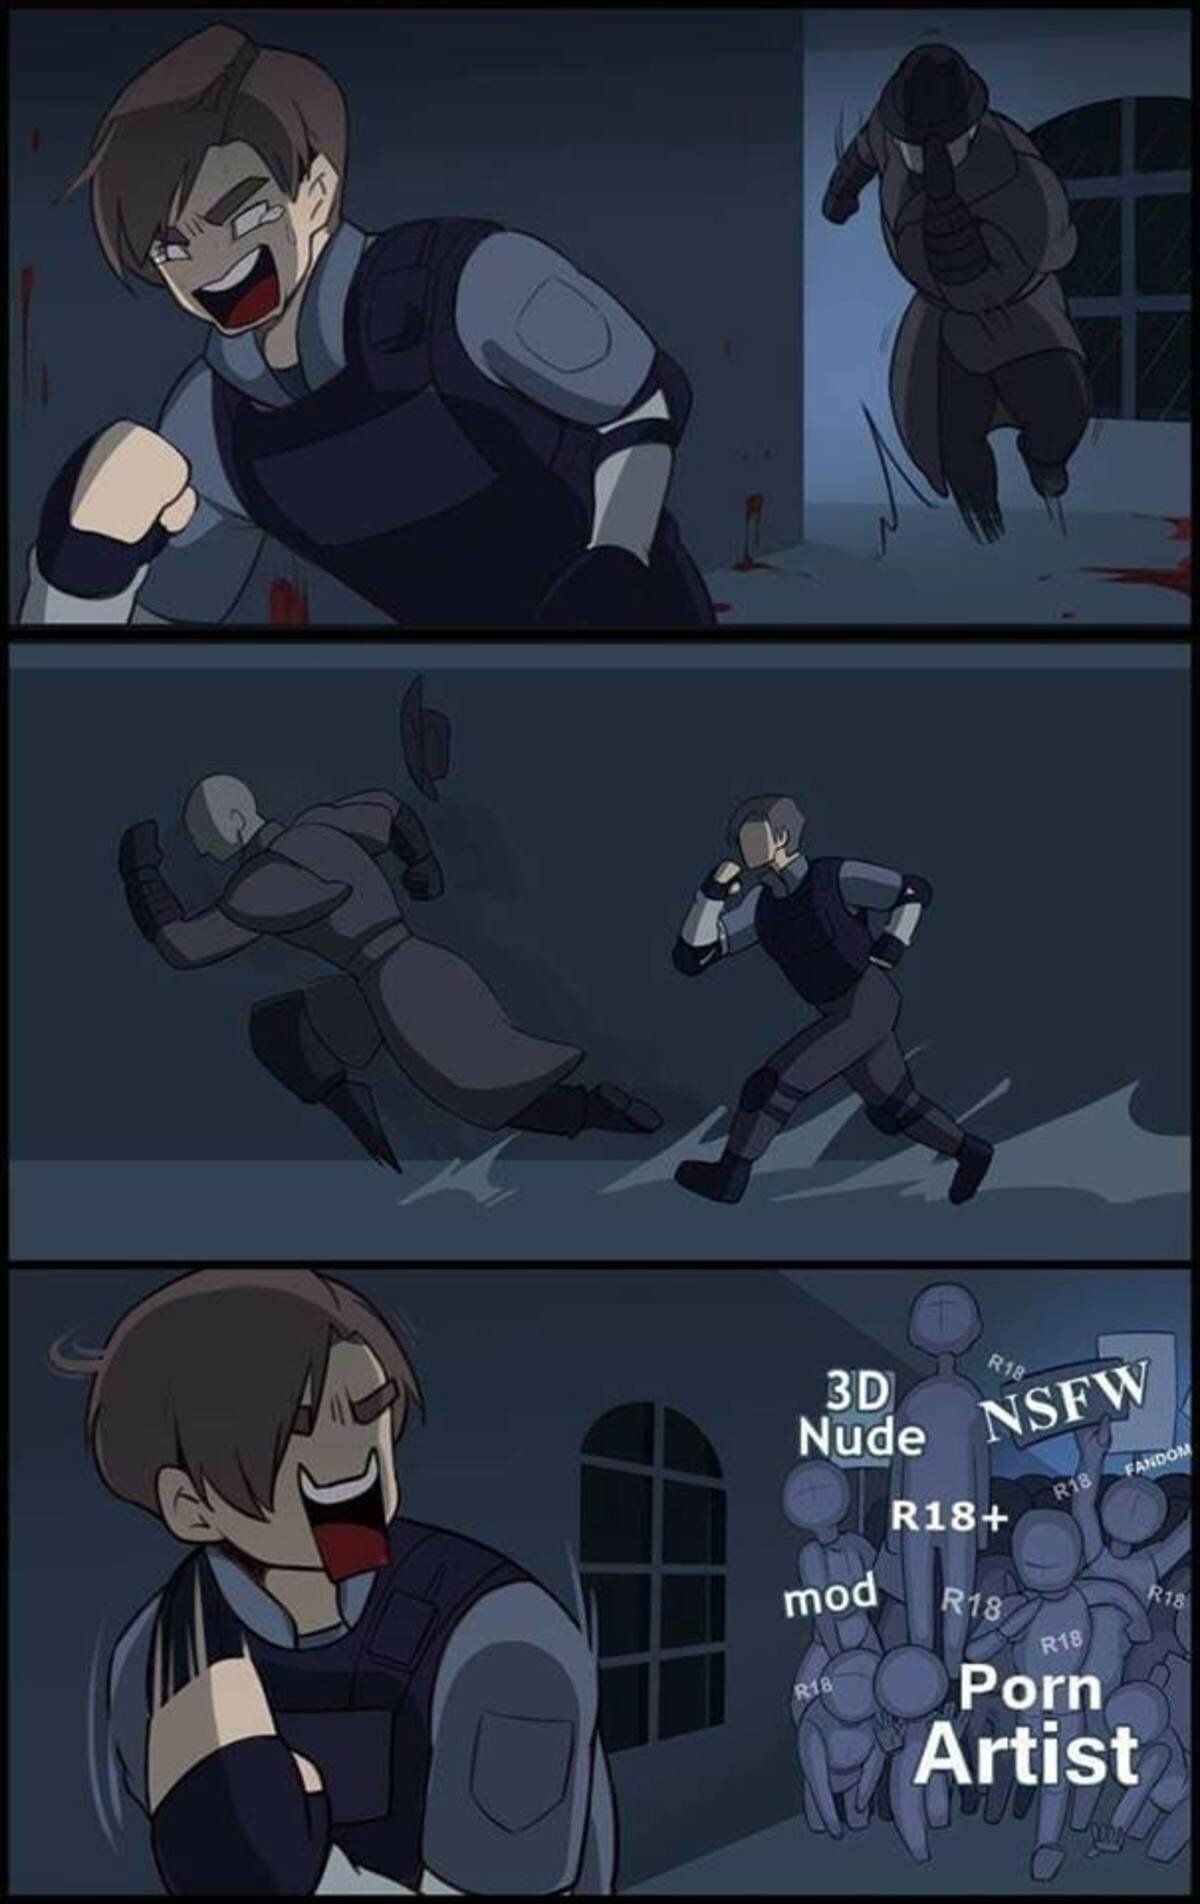 Pin By Starbound On Lol In 2020 Resident Evil Funny Resident